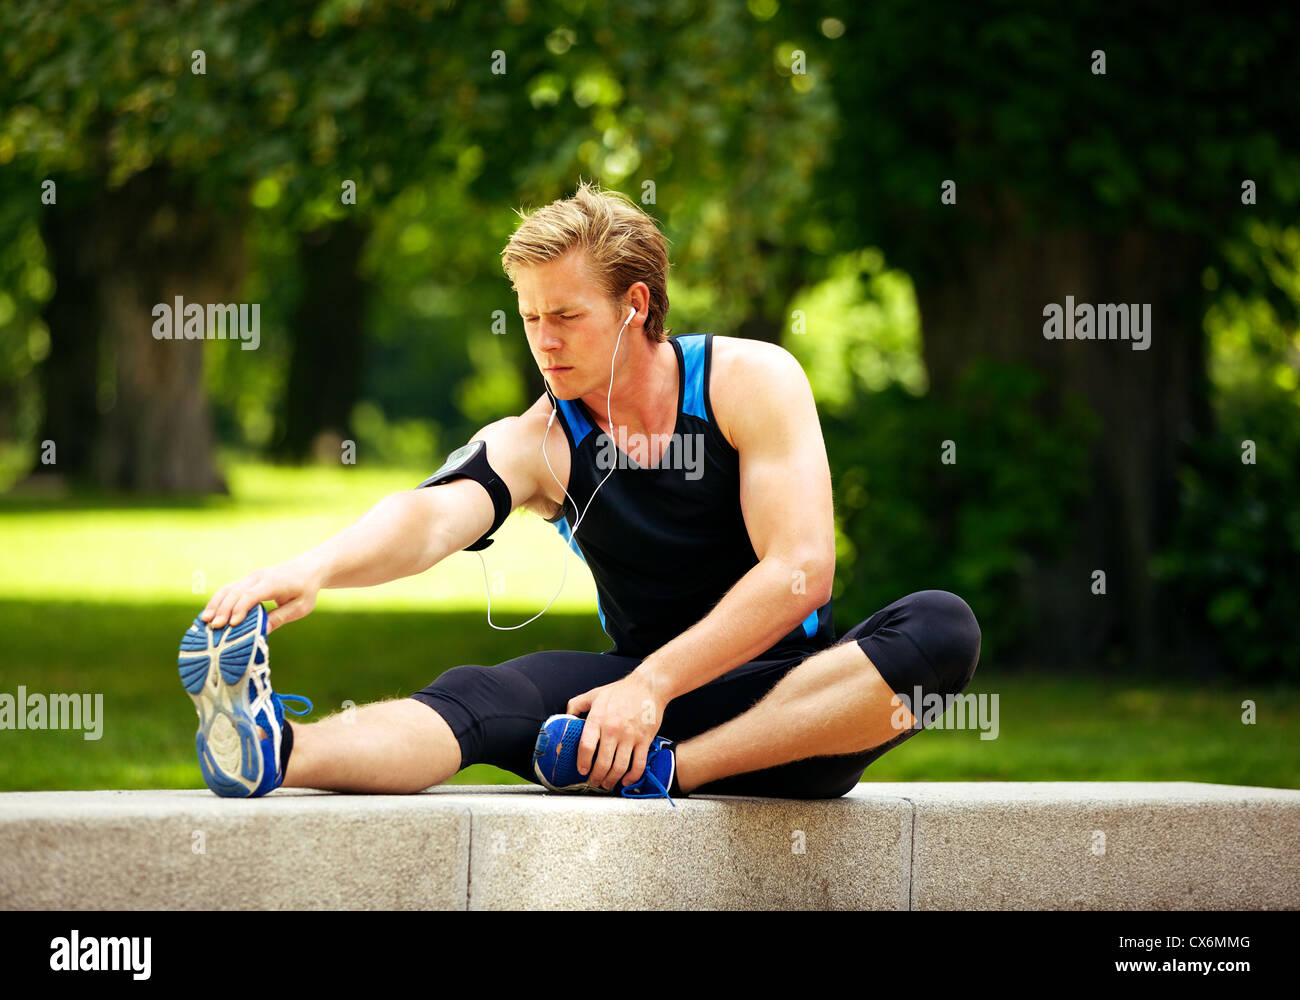 Runner warming up and stretching his legs before running - Stock Image